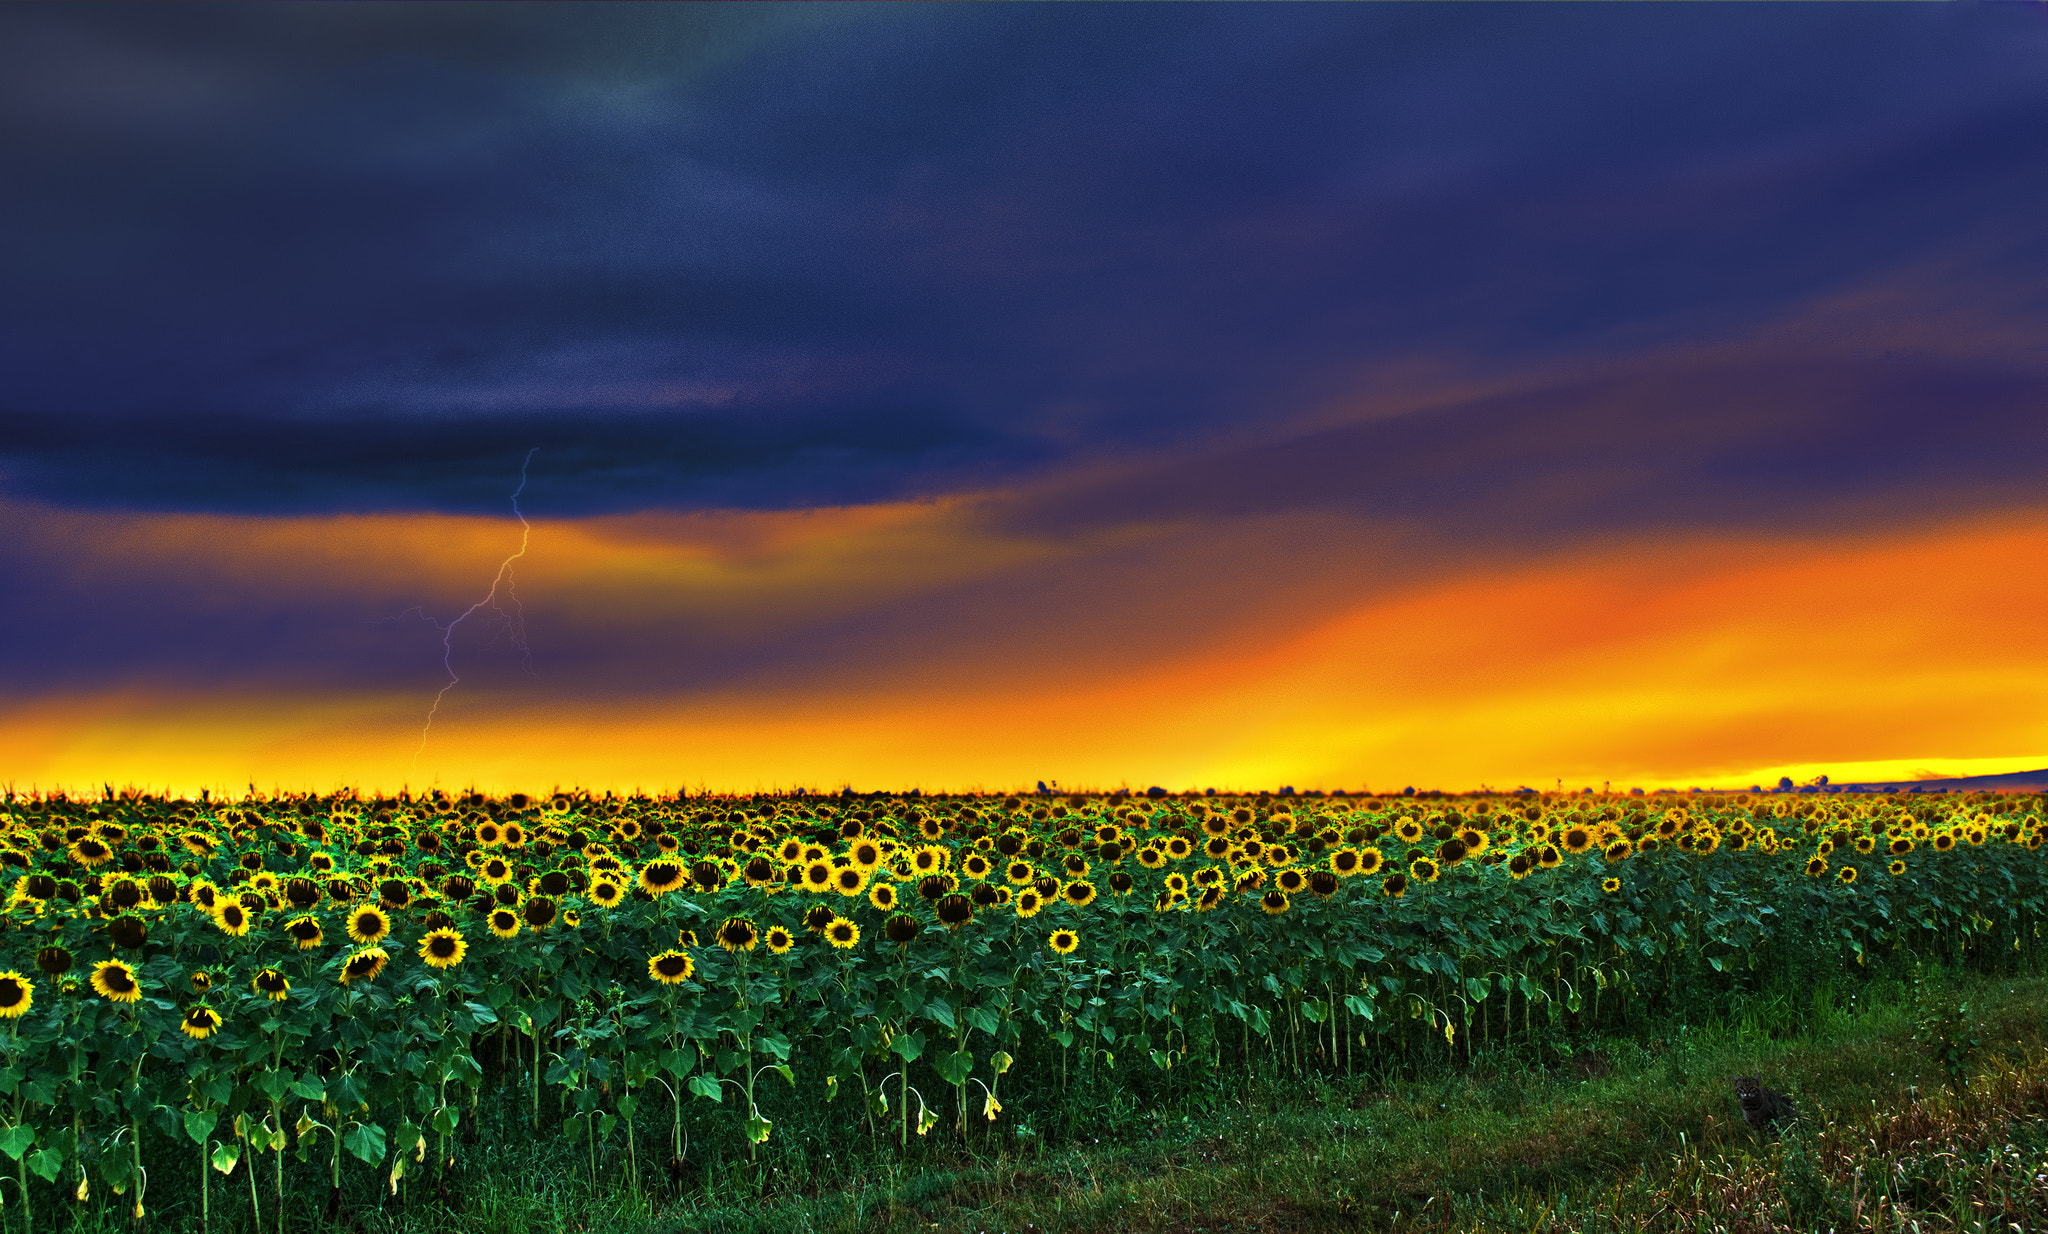 Photograph Sunflowers by David Bugyi on 500px